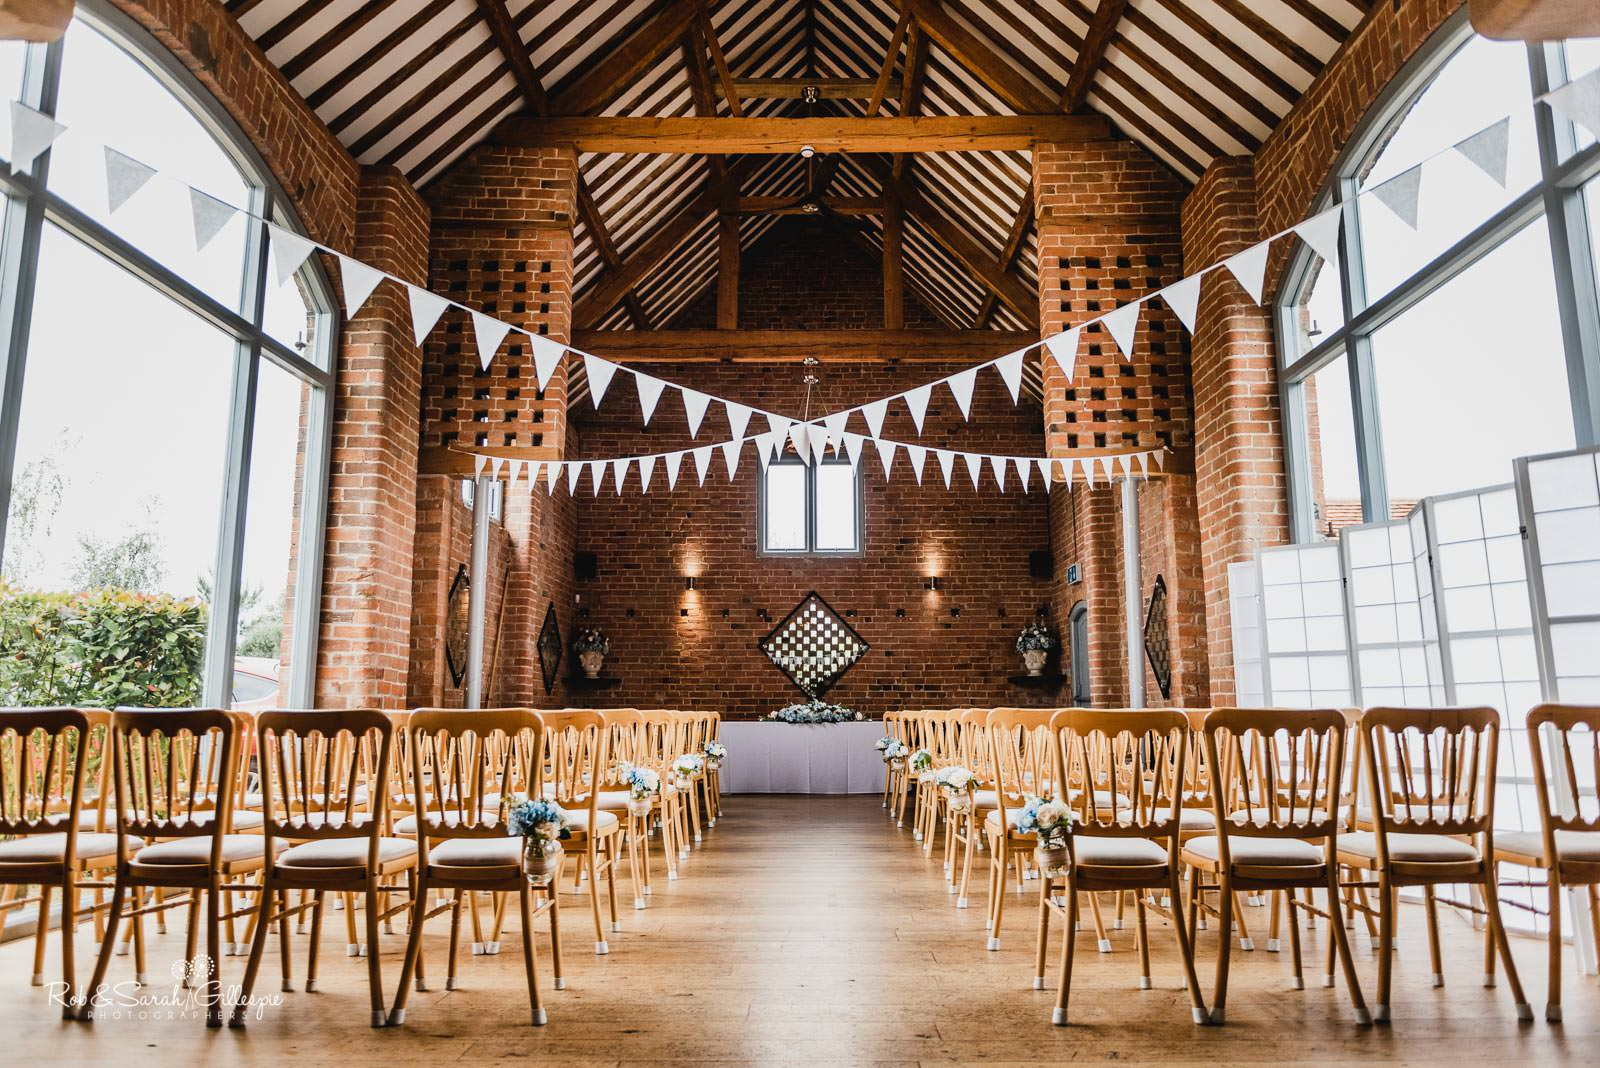 Swallows Nest Barn set up for wedding ceremony